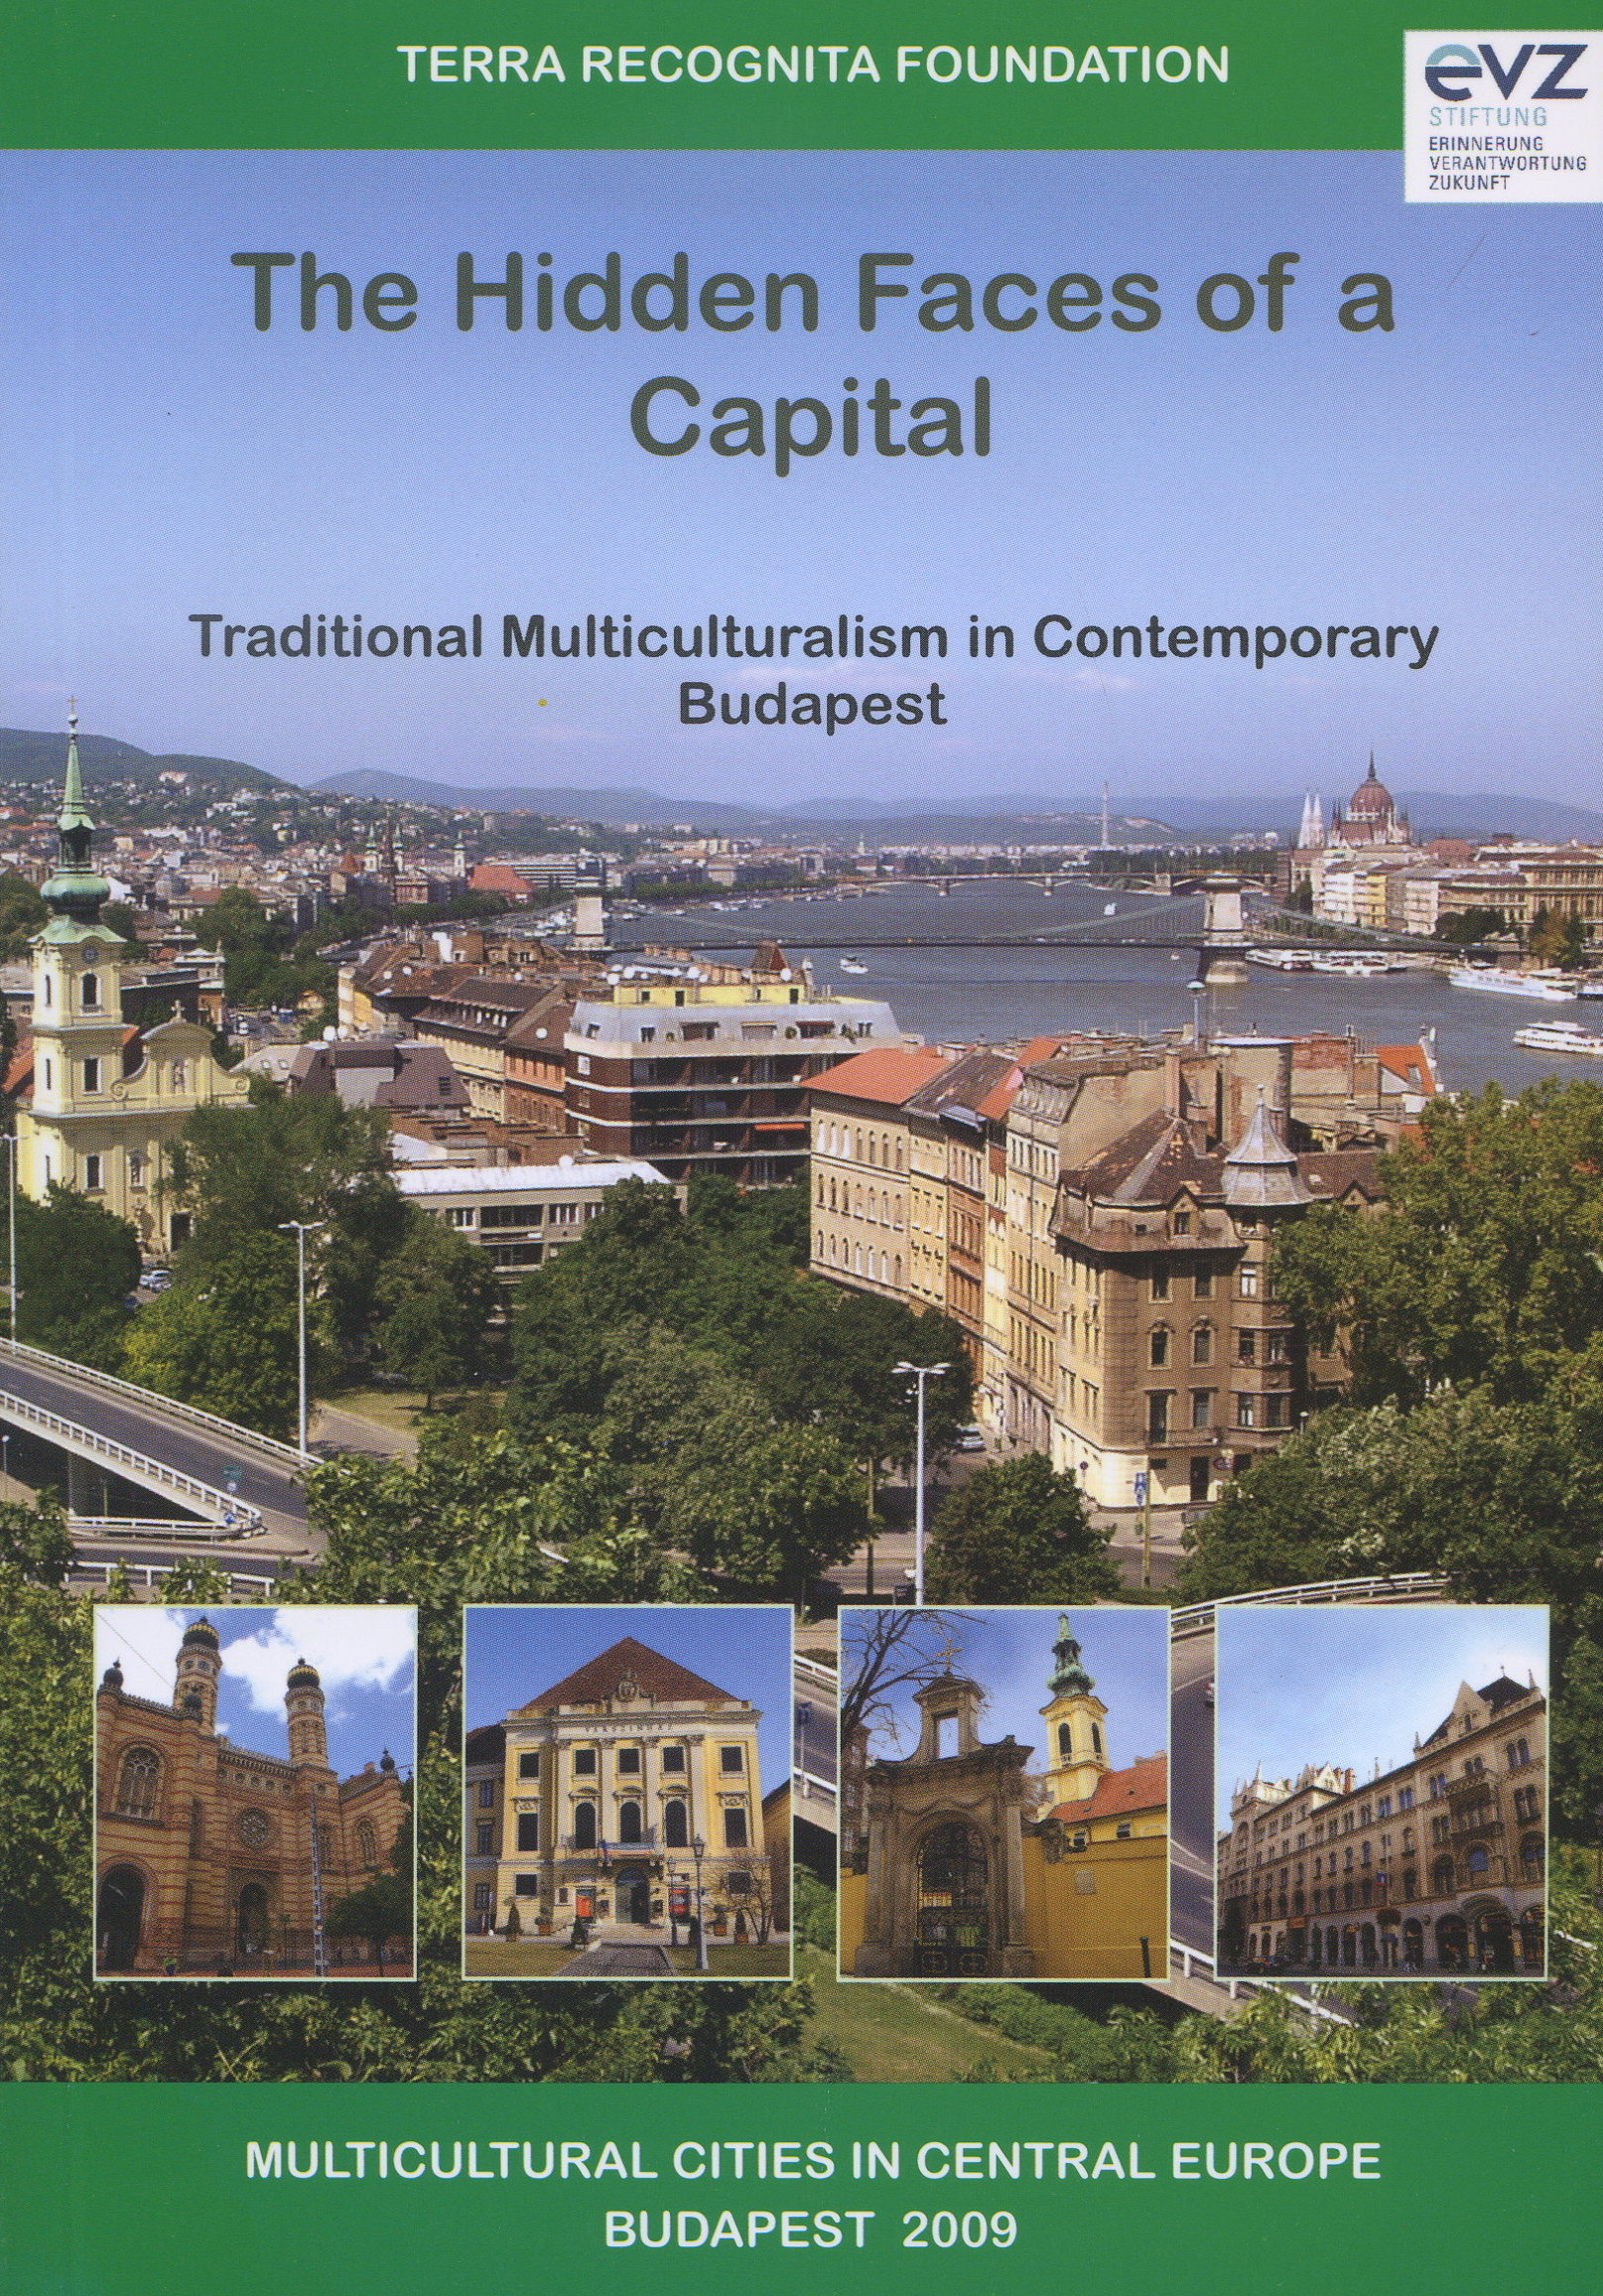 The Hidden Faces of a Capital - Traditional Multiculturalism in Contemporary Budapest